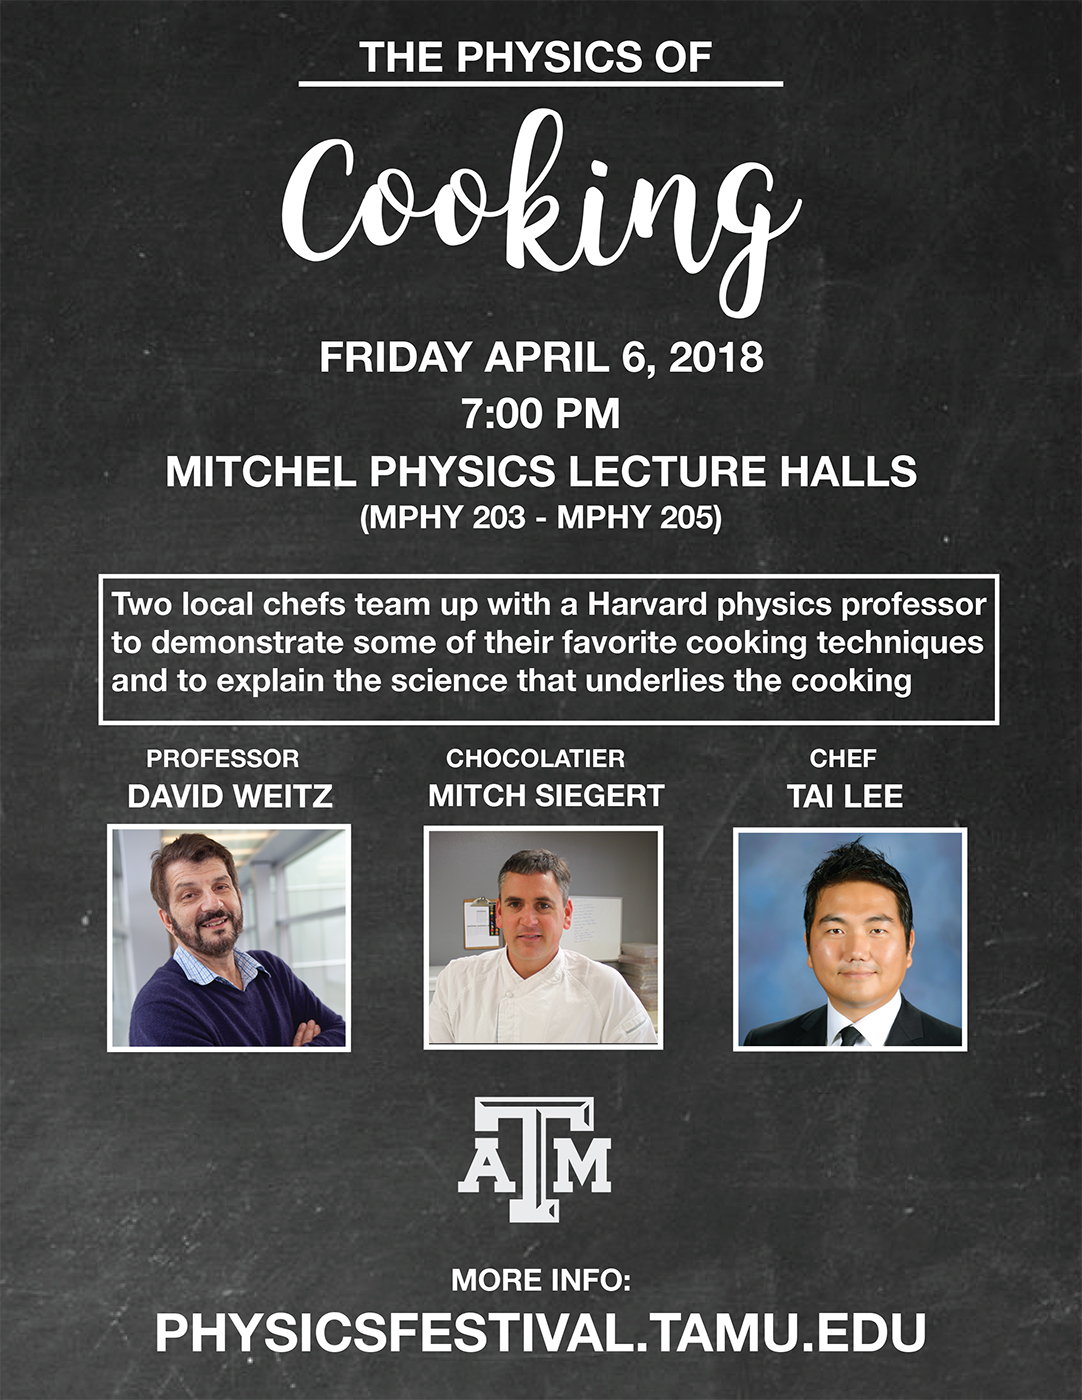 Poster featuring head shots of three chefs to promote The Physics of Cooking event